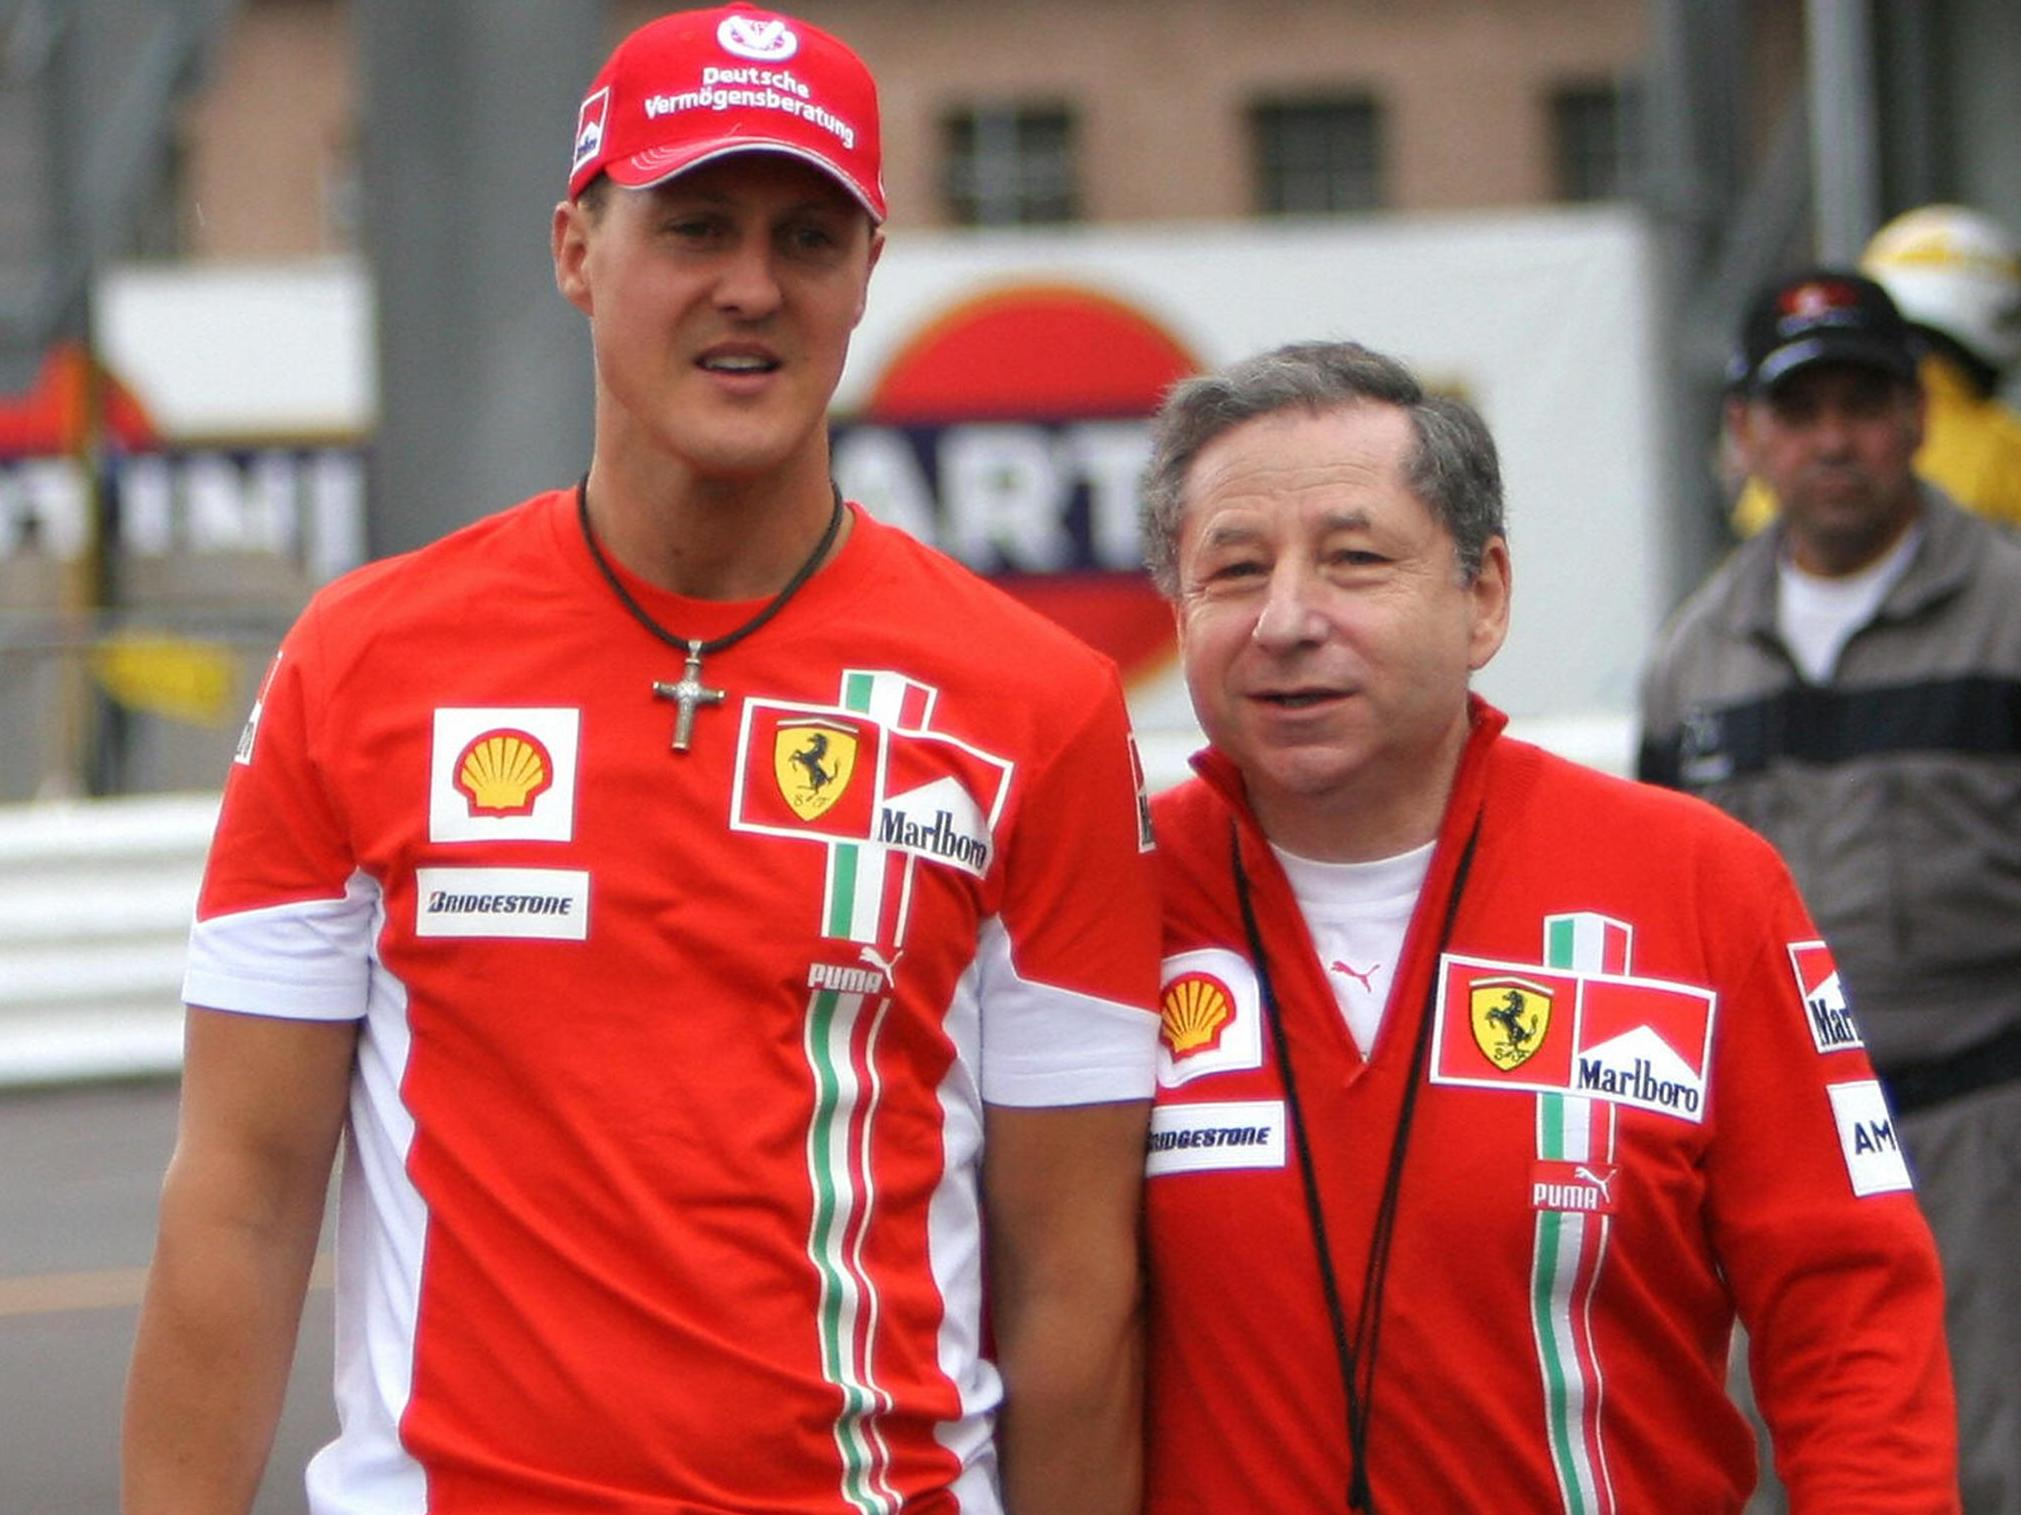 Michael Schumacher 2019